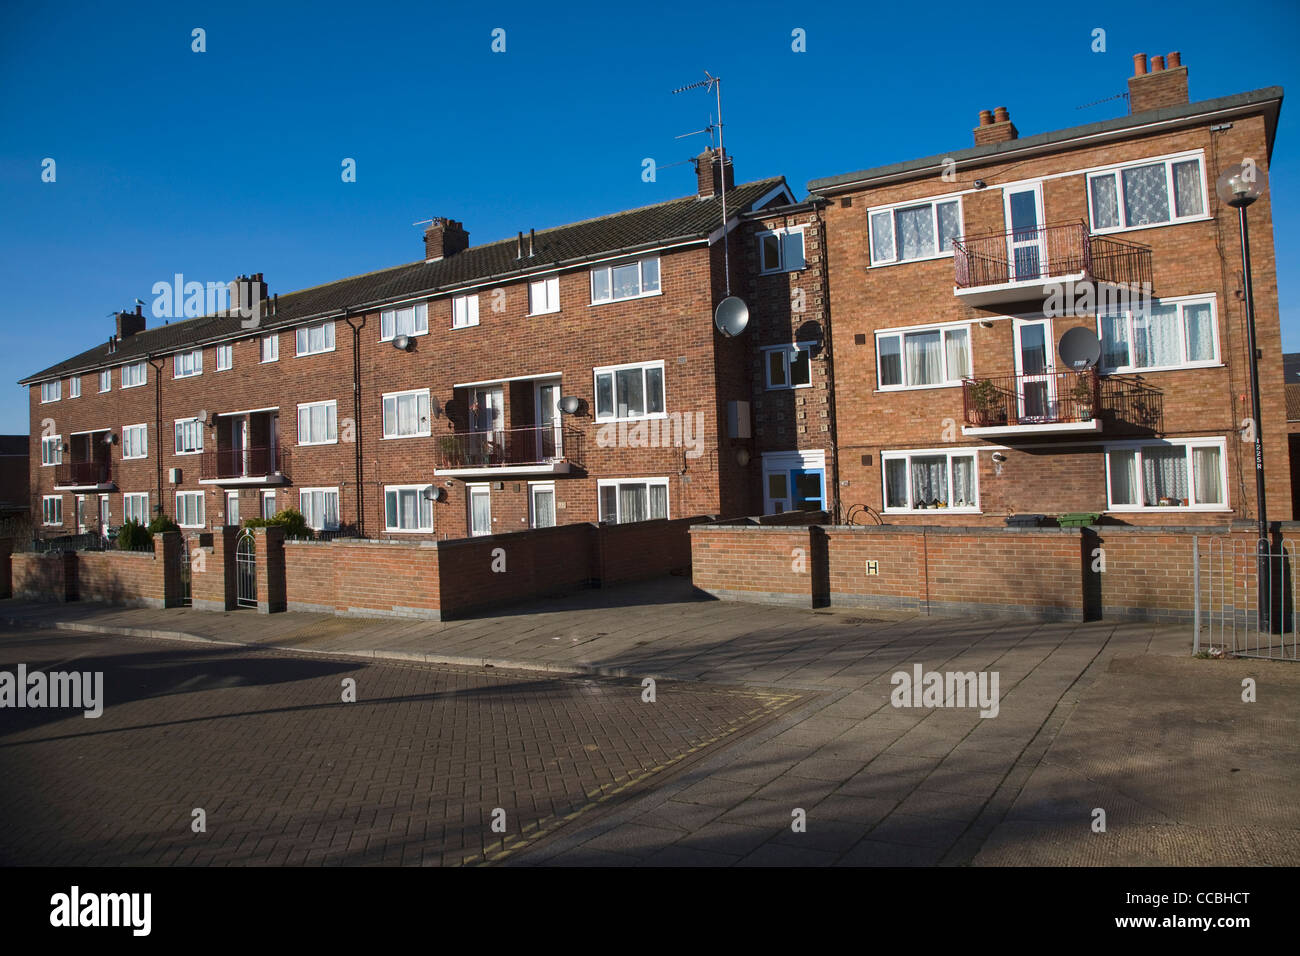 Social housing council housing Great Yarmouth, England - Stock Image